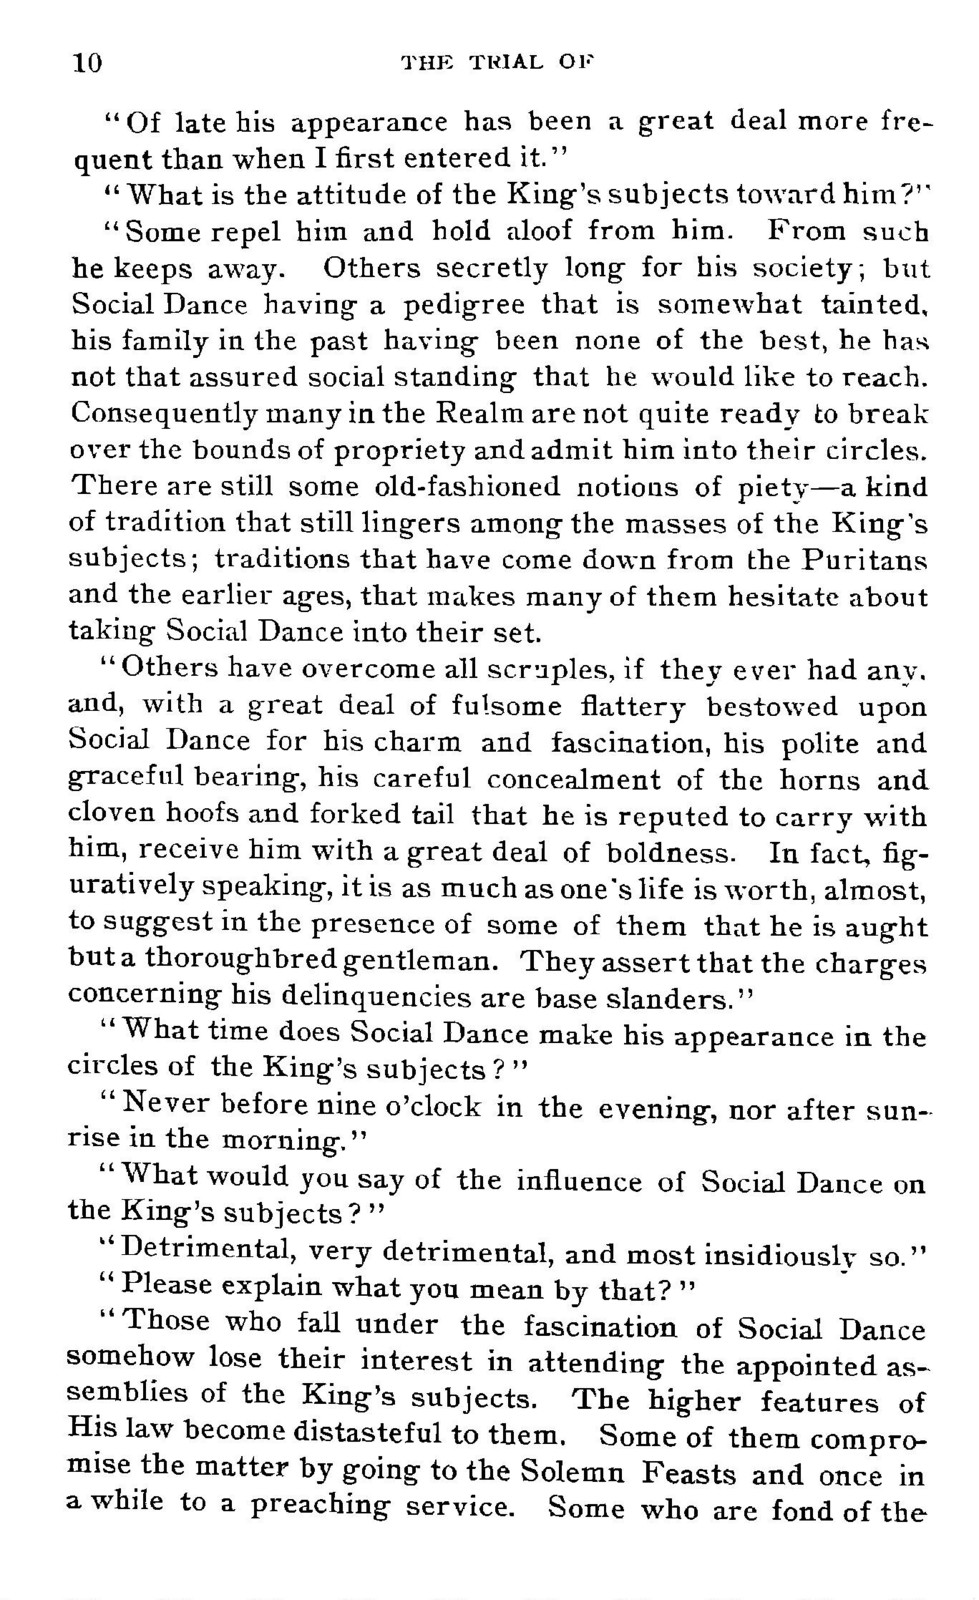 An  account of the trial of social dance